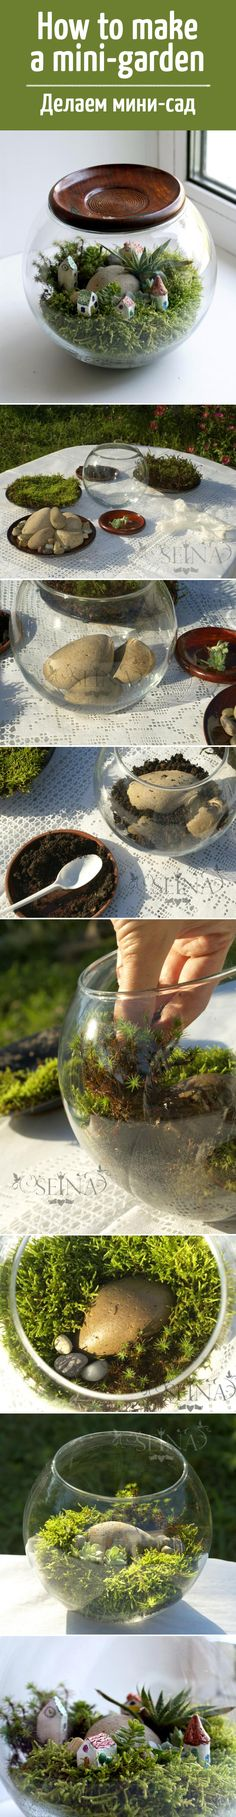 Haw to make a mini-garden / Как сделать мини-сад #мастеркласс #ручнаяработа…